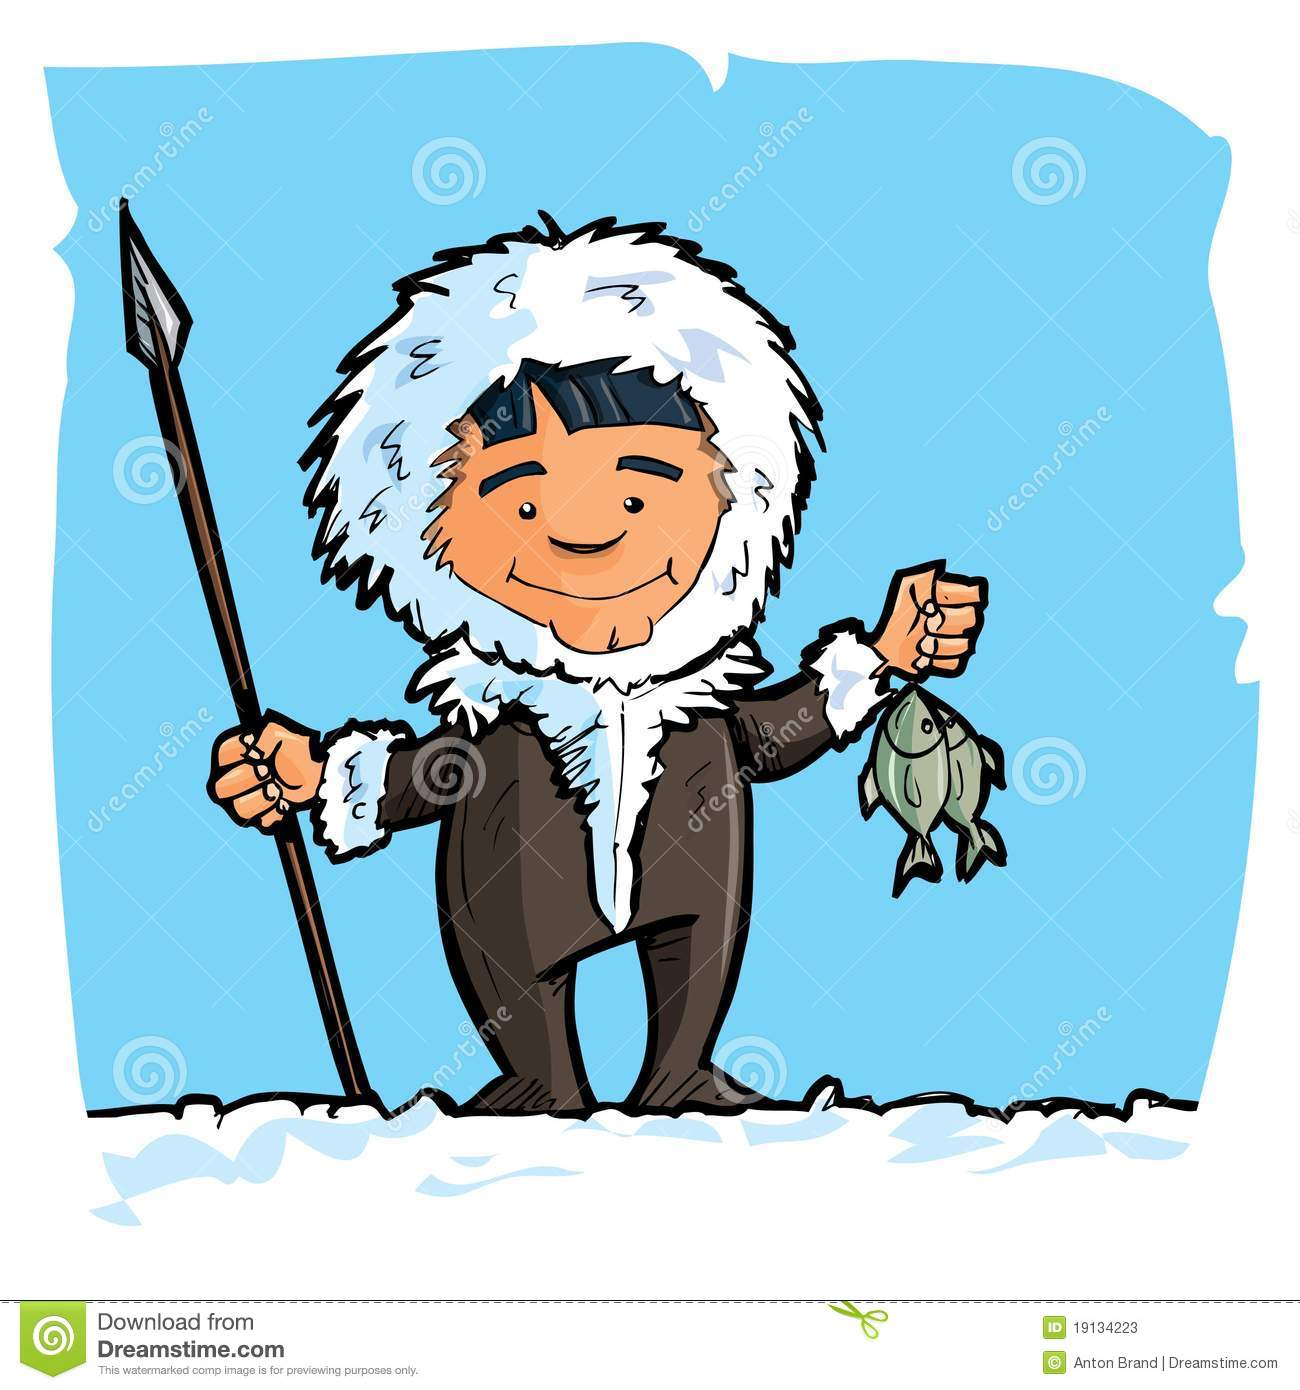 Clip Art Eskimo Clipart eskimo stock illustrations 1147 cartoon with a spear and fish photos